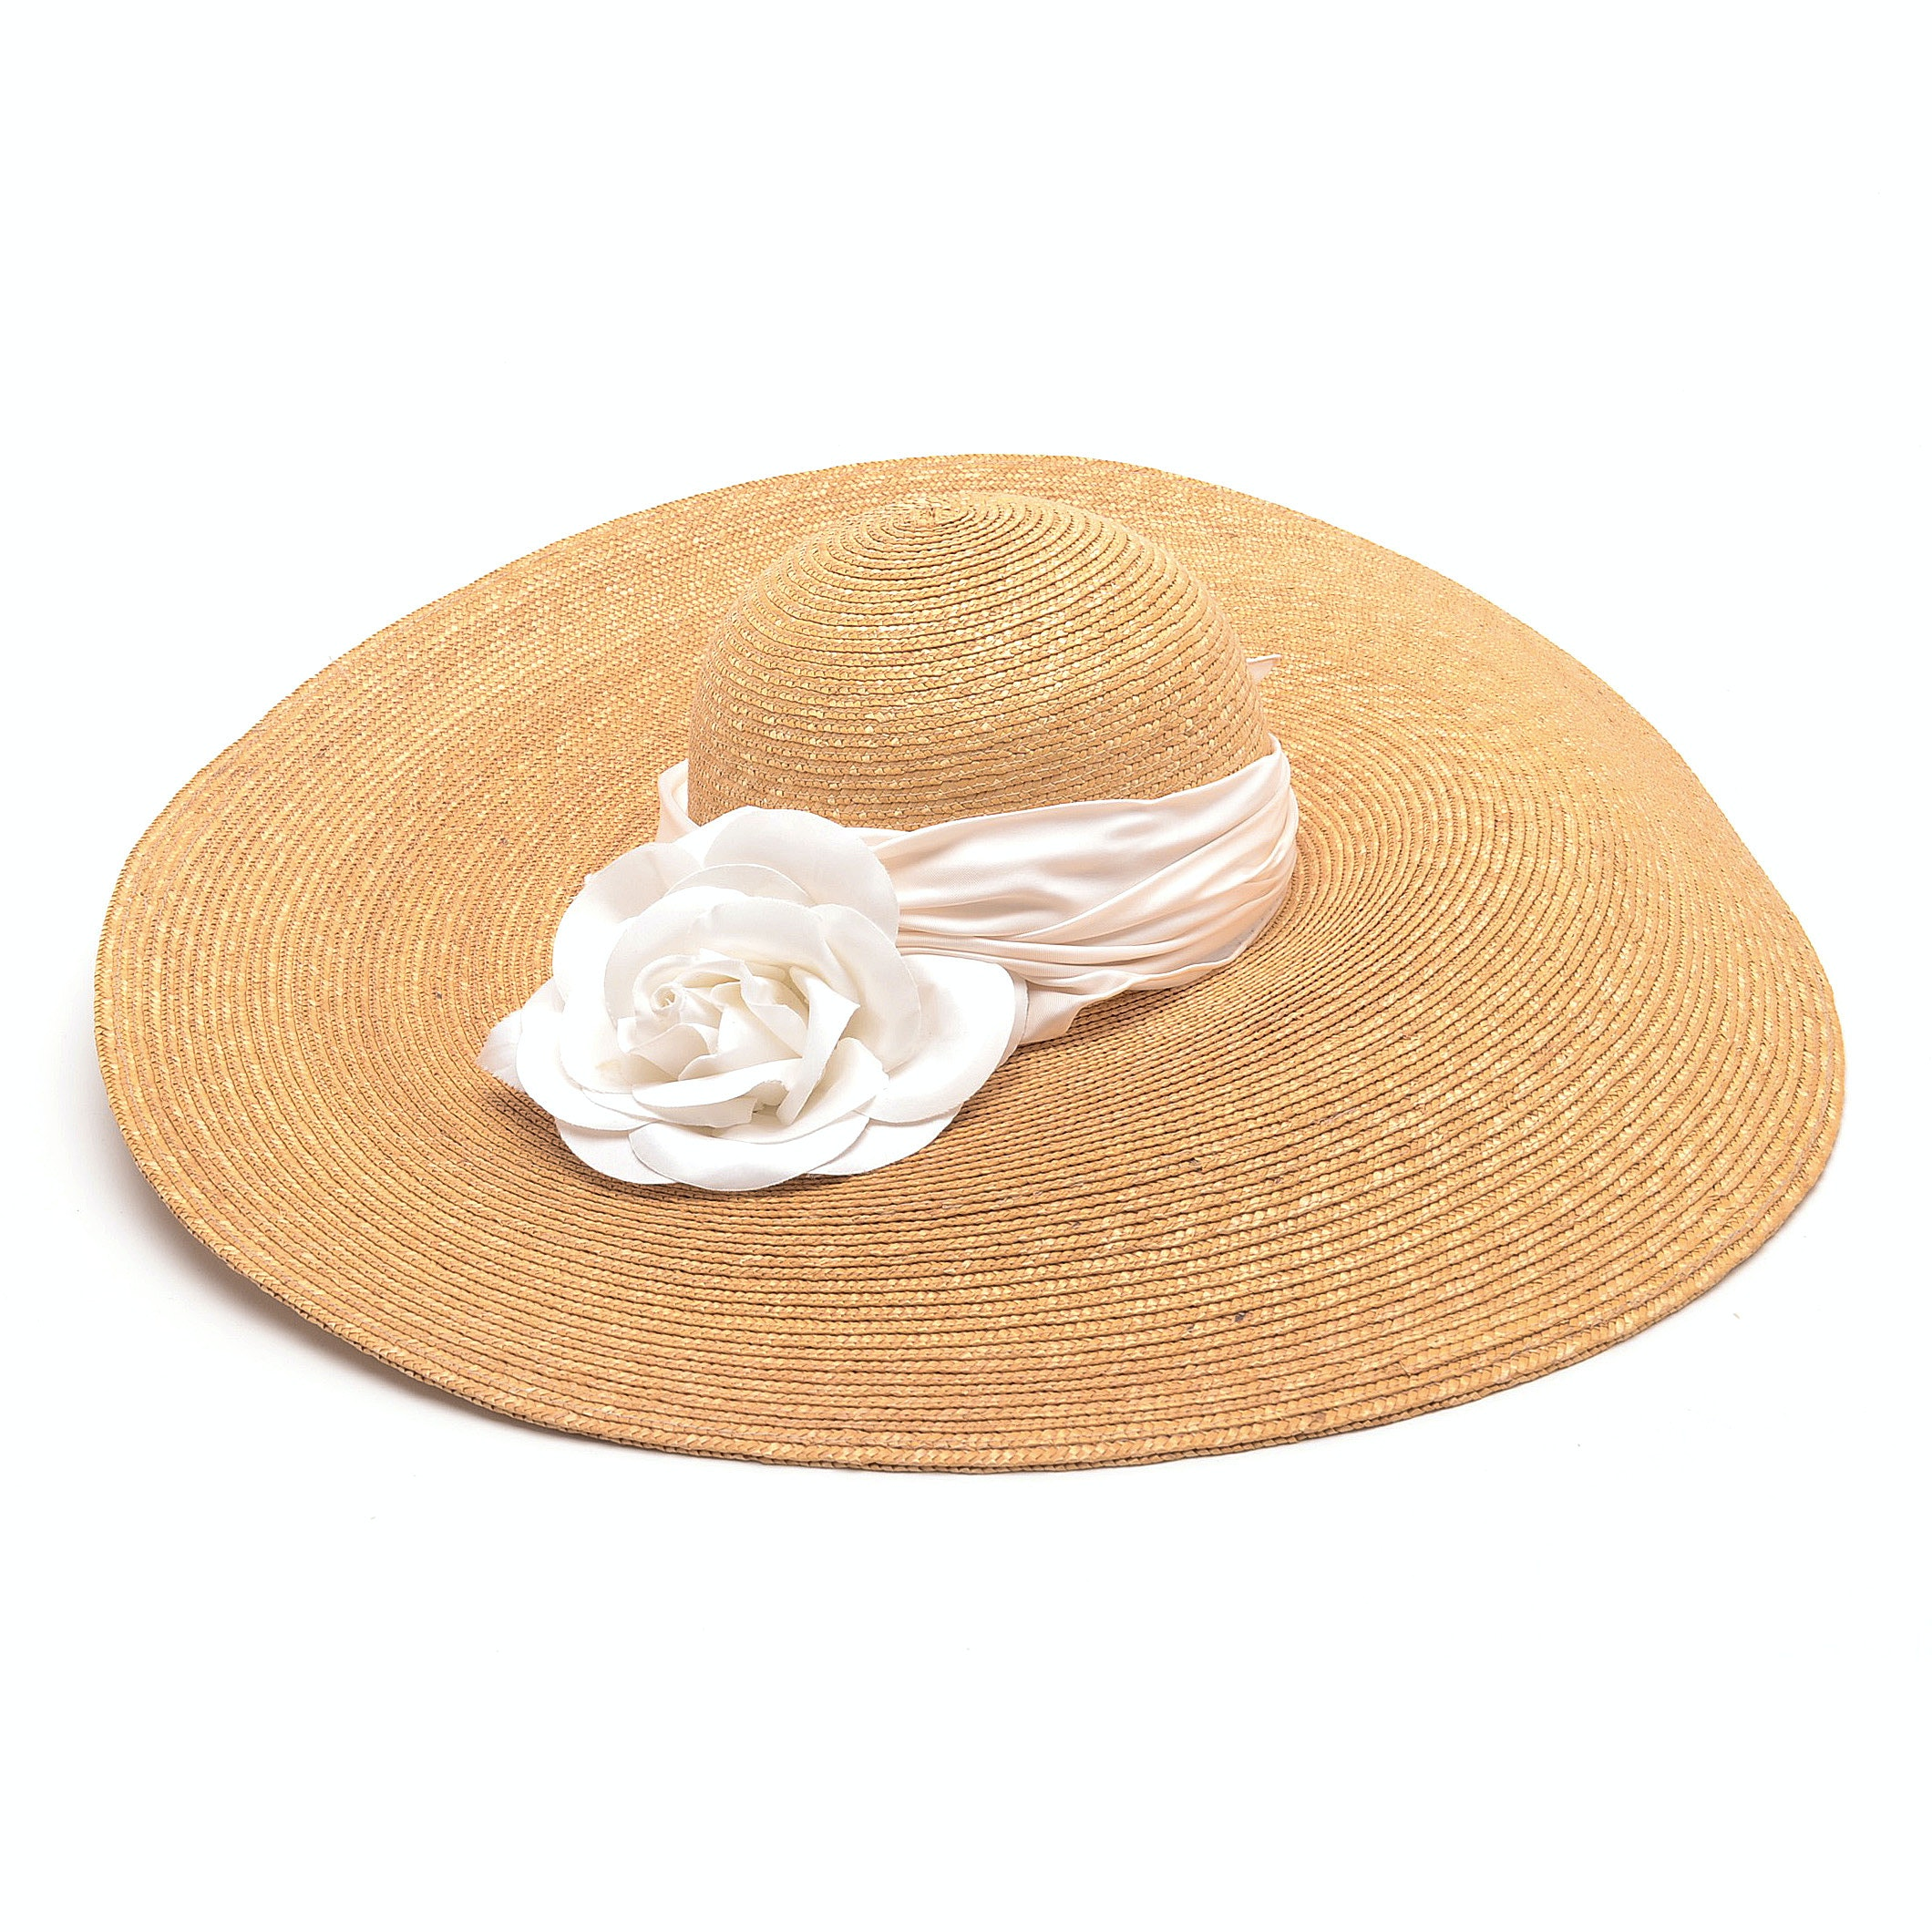 Madcaps of Paris and New York Natural Straw Picture Hat with Hand Cut White Fabric Rose and Silky Hand Tied Band